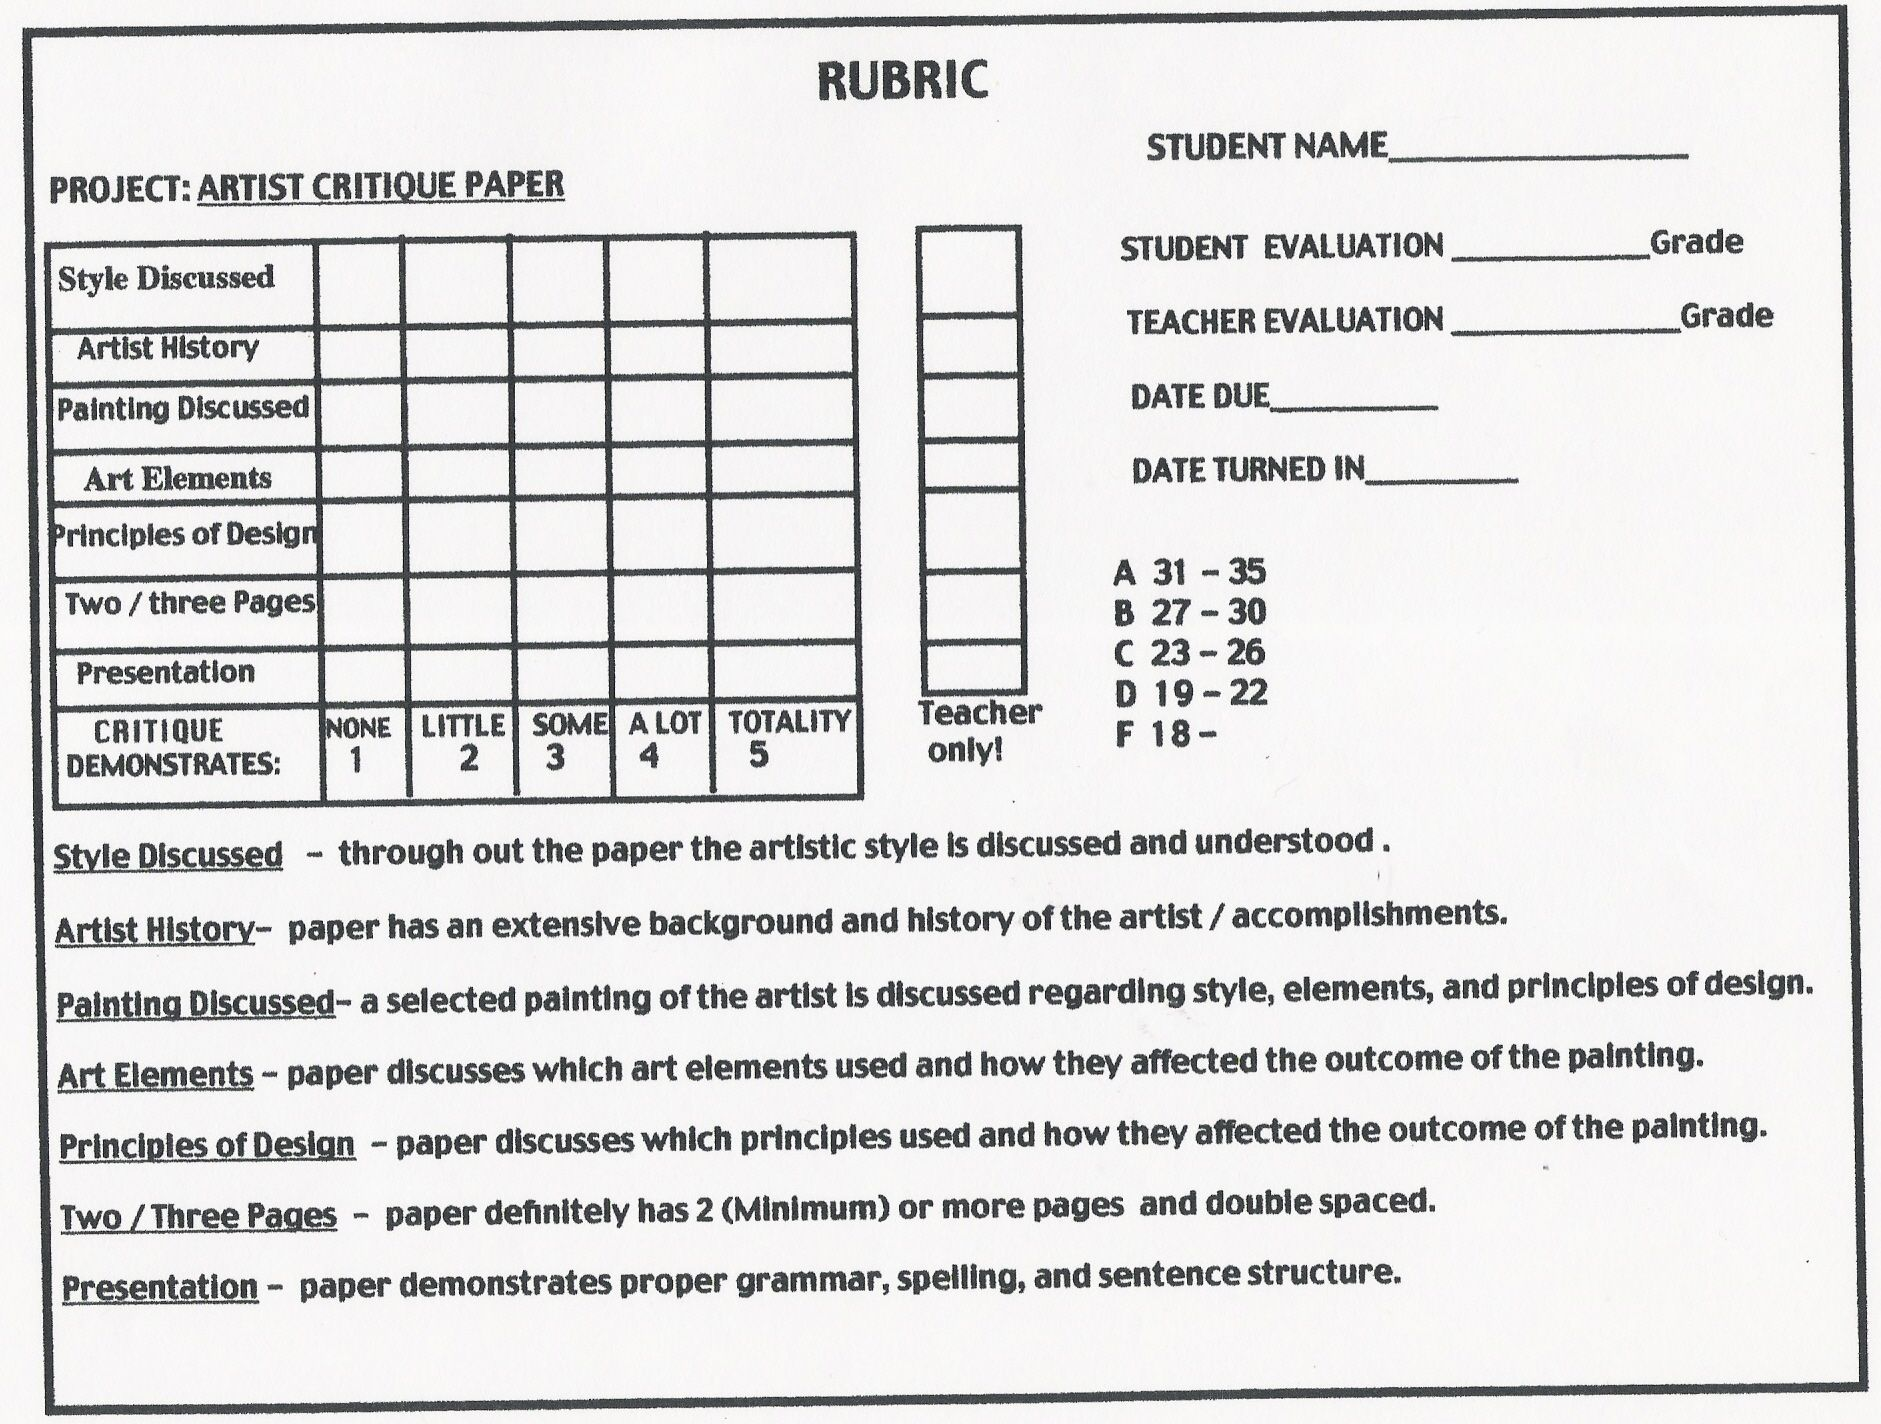 001 Art History Research Paper Rubric Unique Full